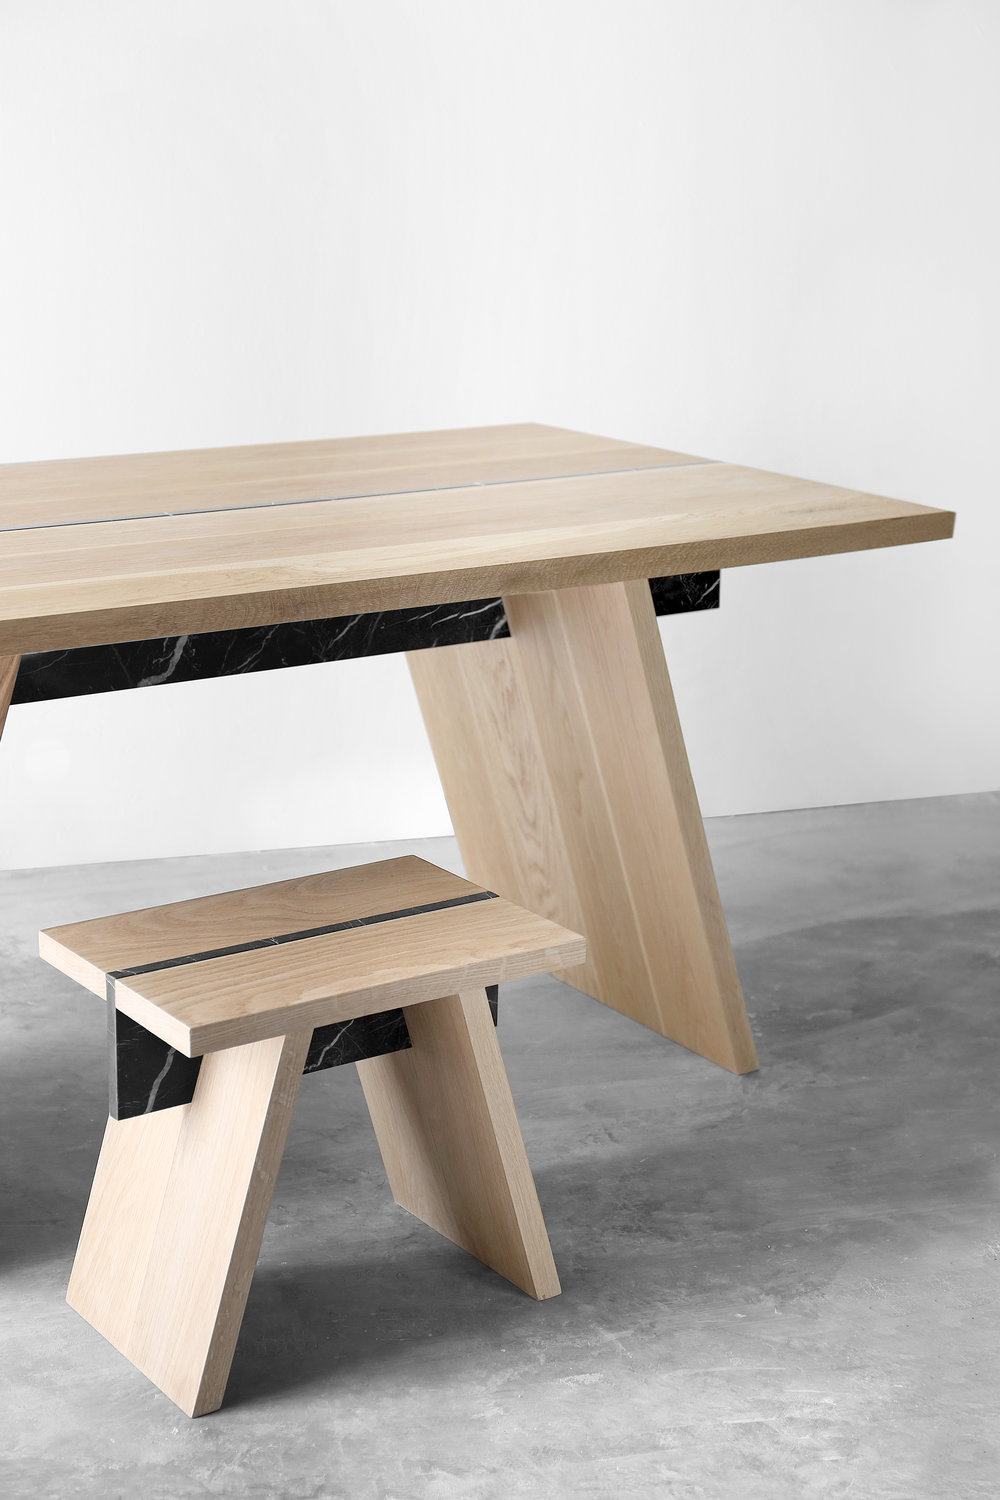 Table and stool